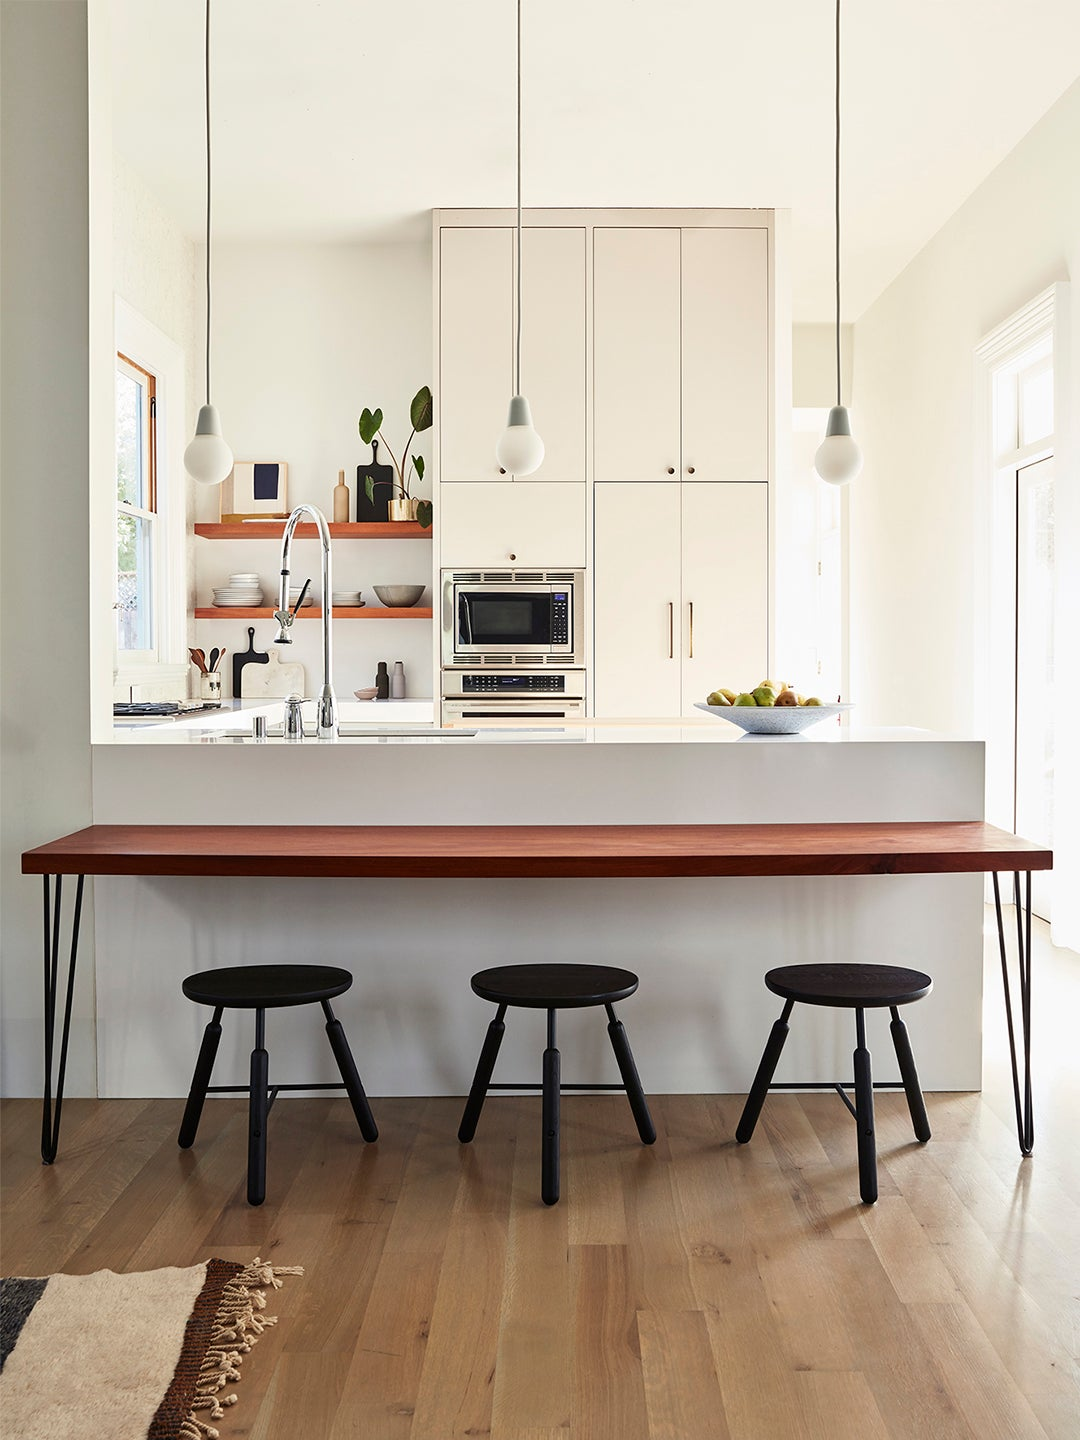 cream colored kitchen with stools at bar